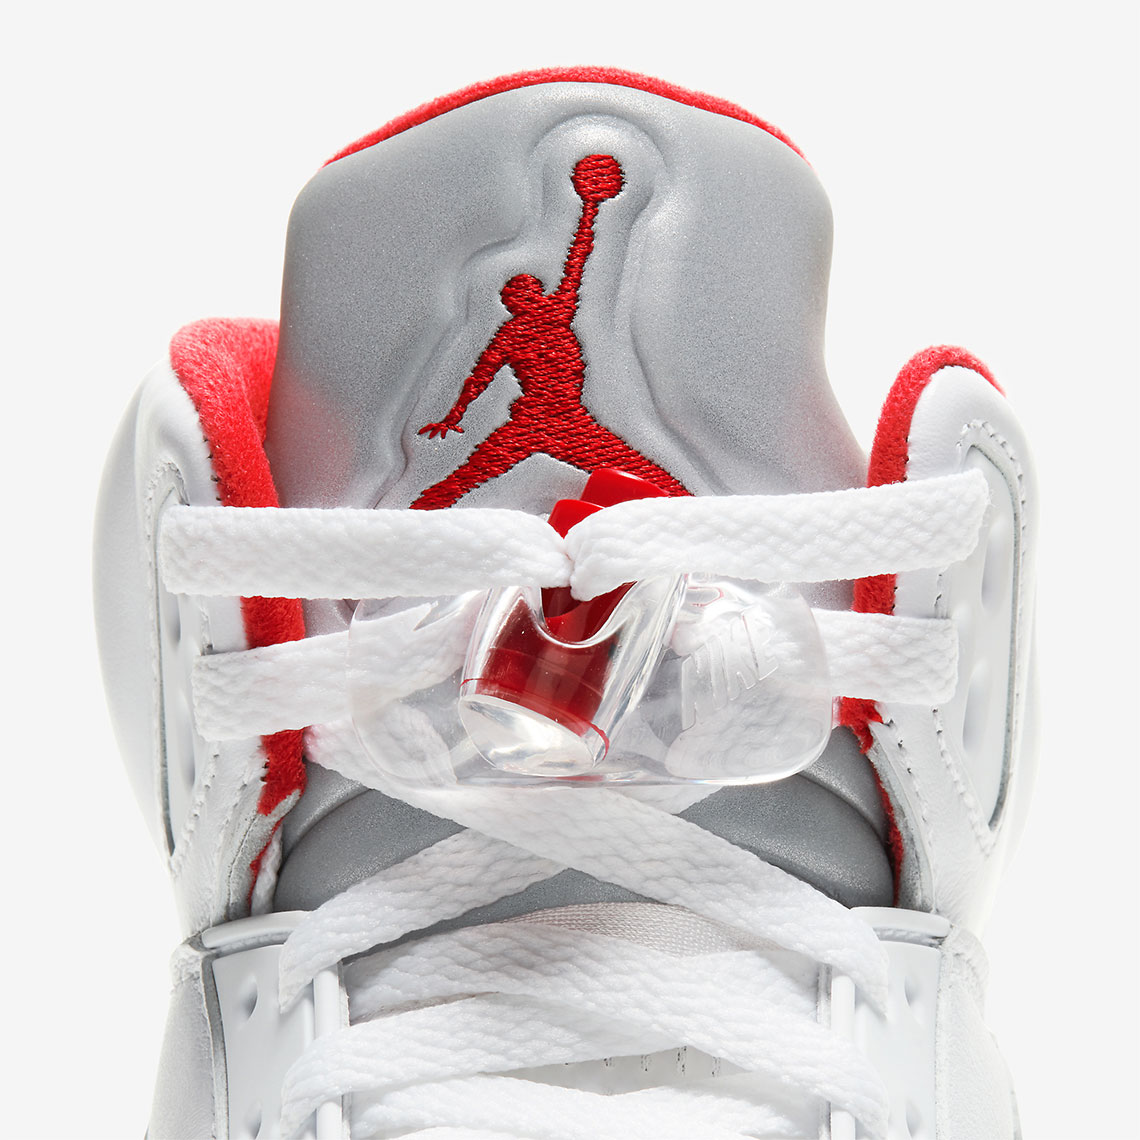 air-jordan-5-fire-red-silver-tongue-2020